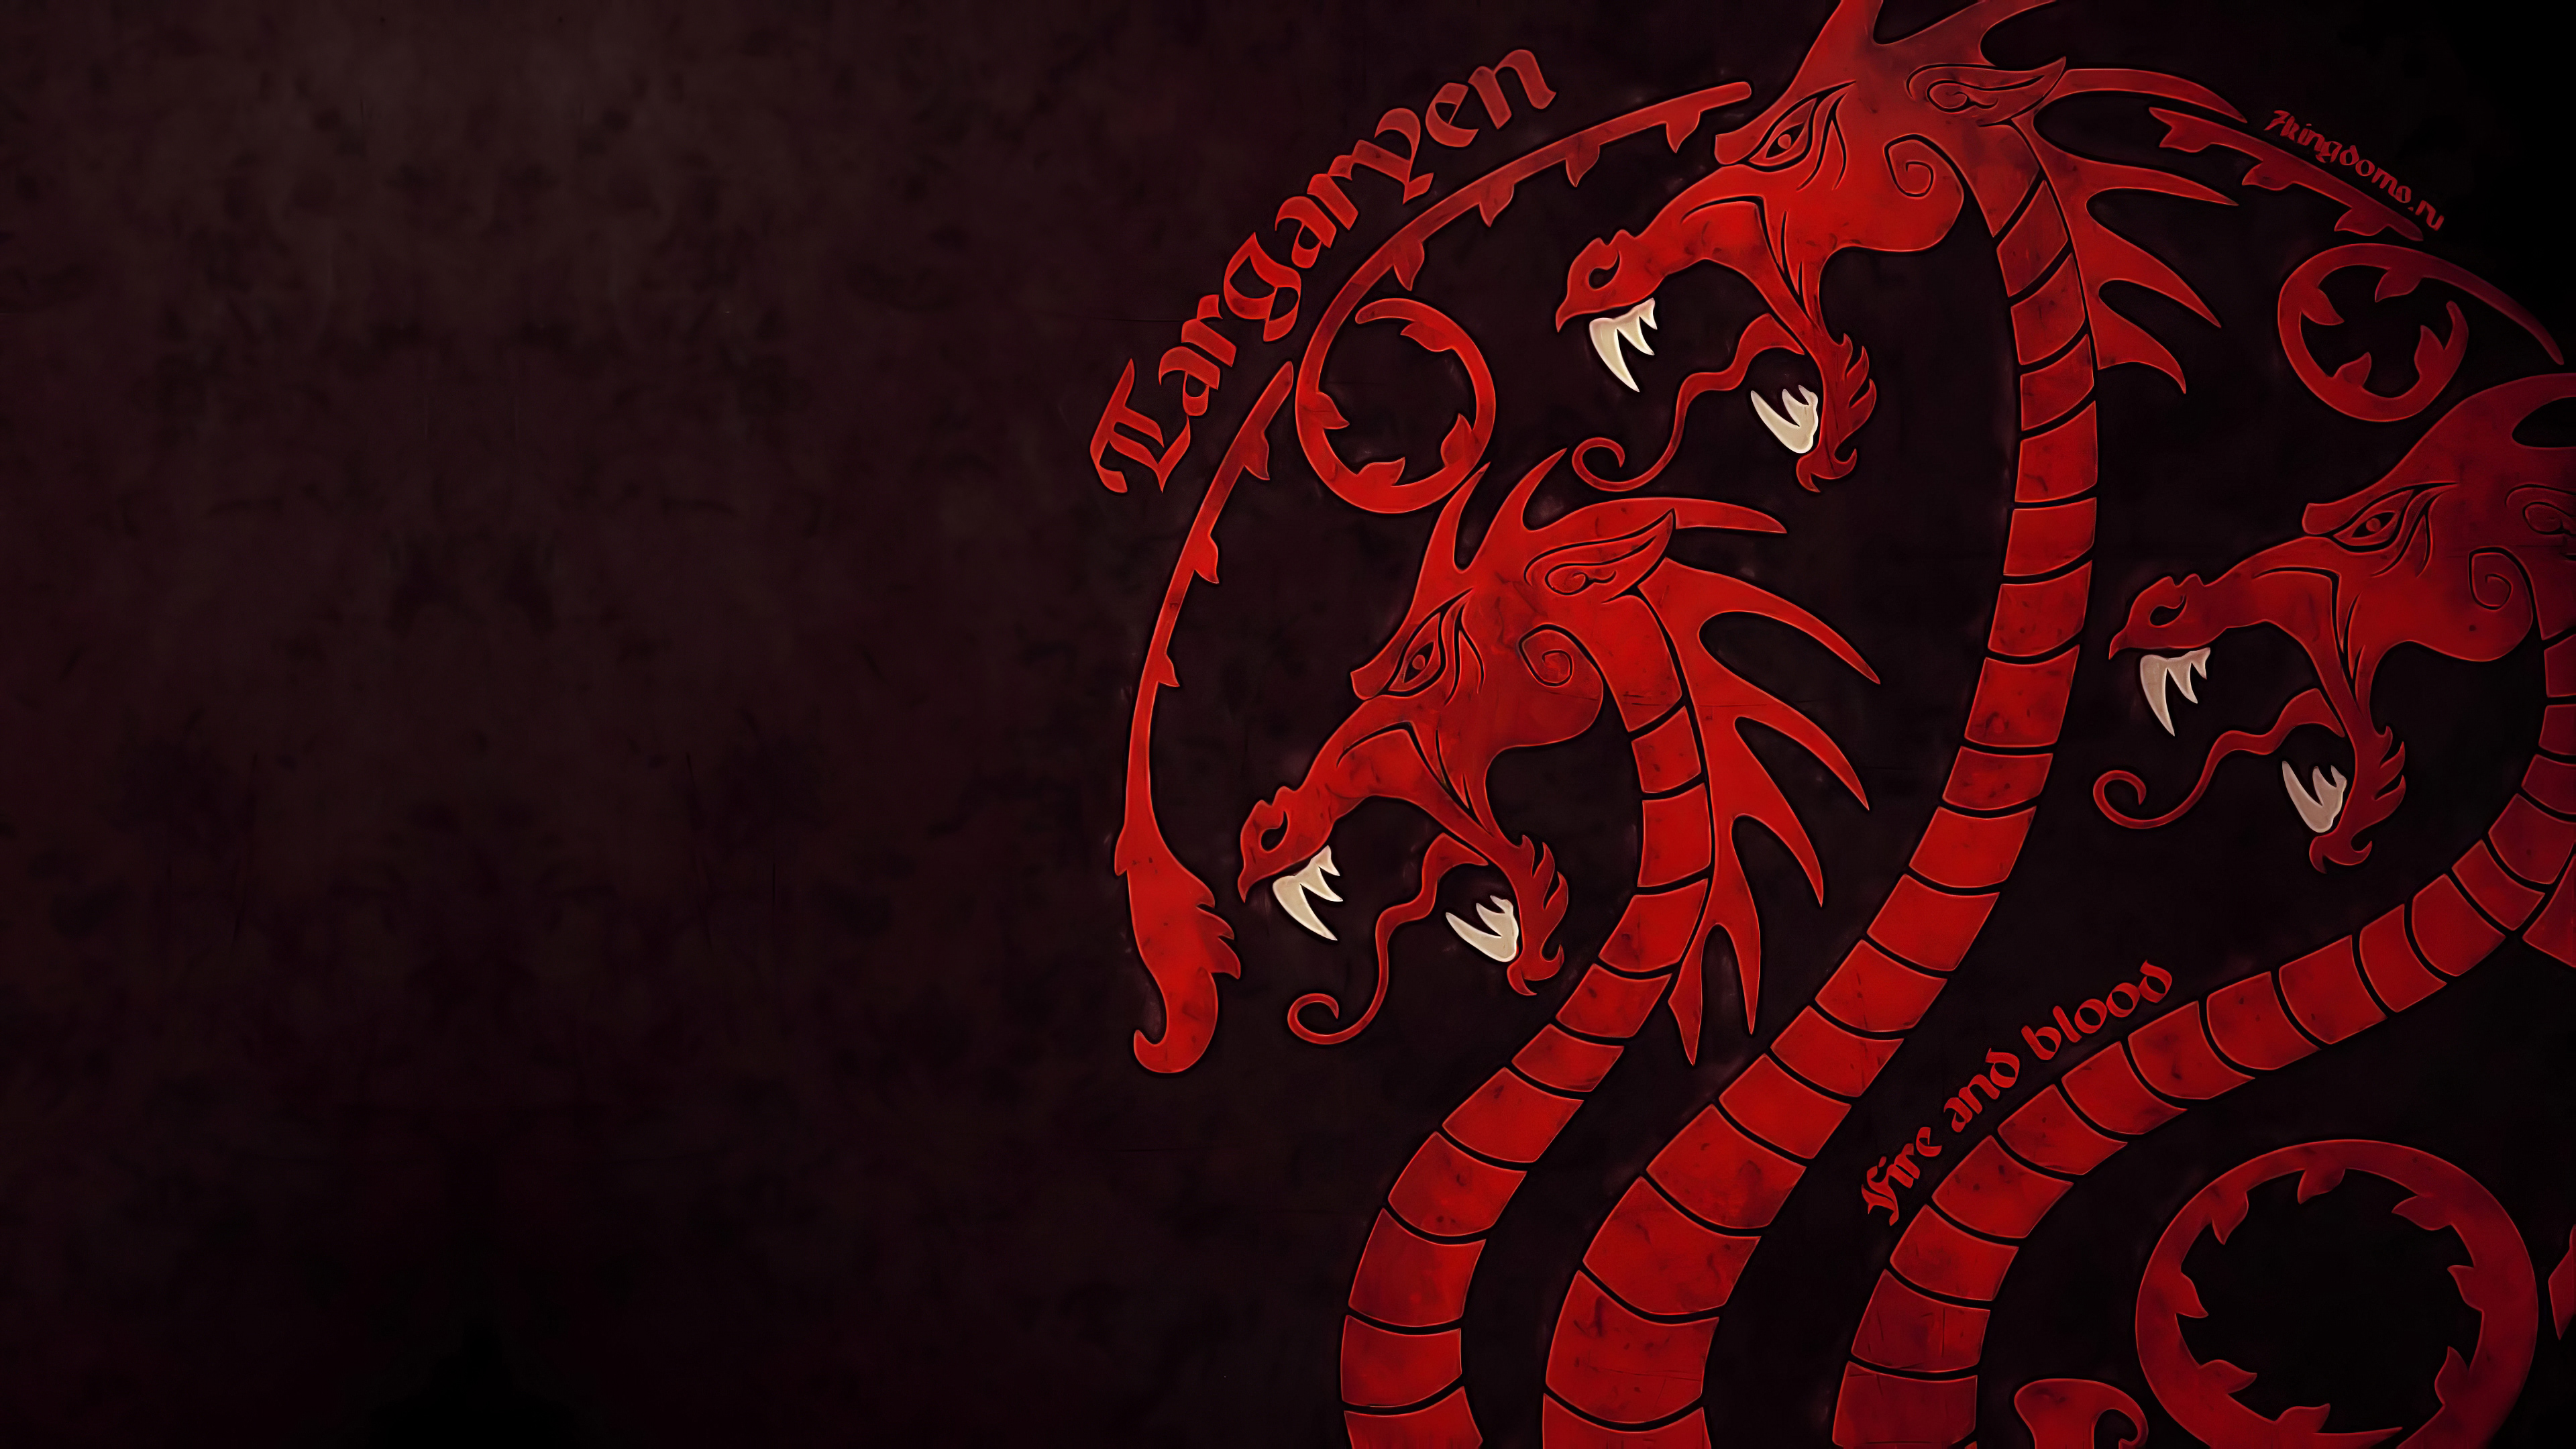 Game Of Thrones House Targaryen 4k Hd Tv Shows 4k Wallpapers